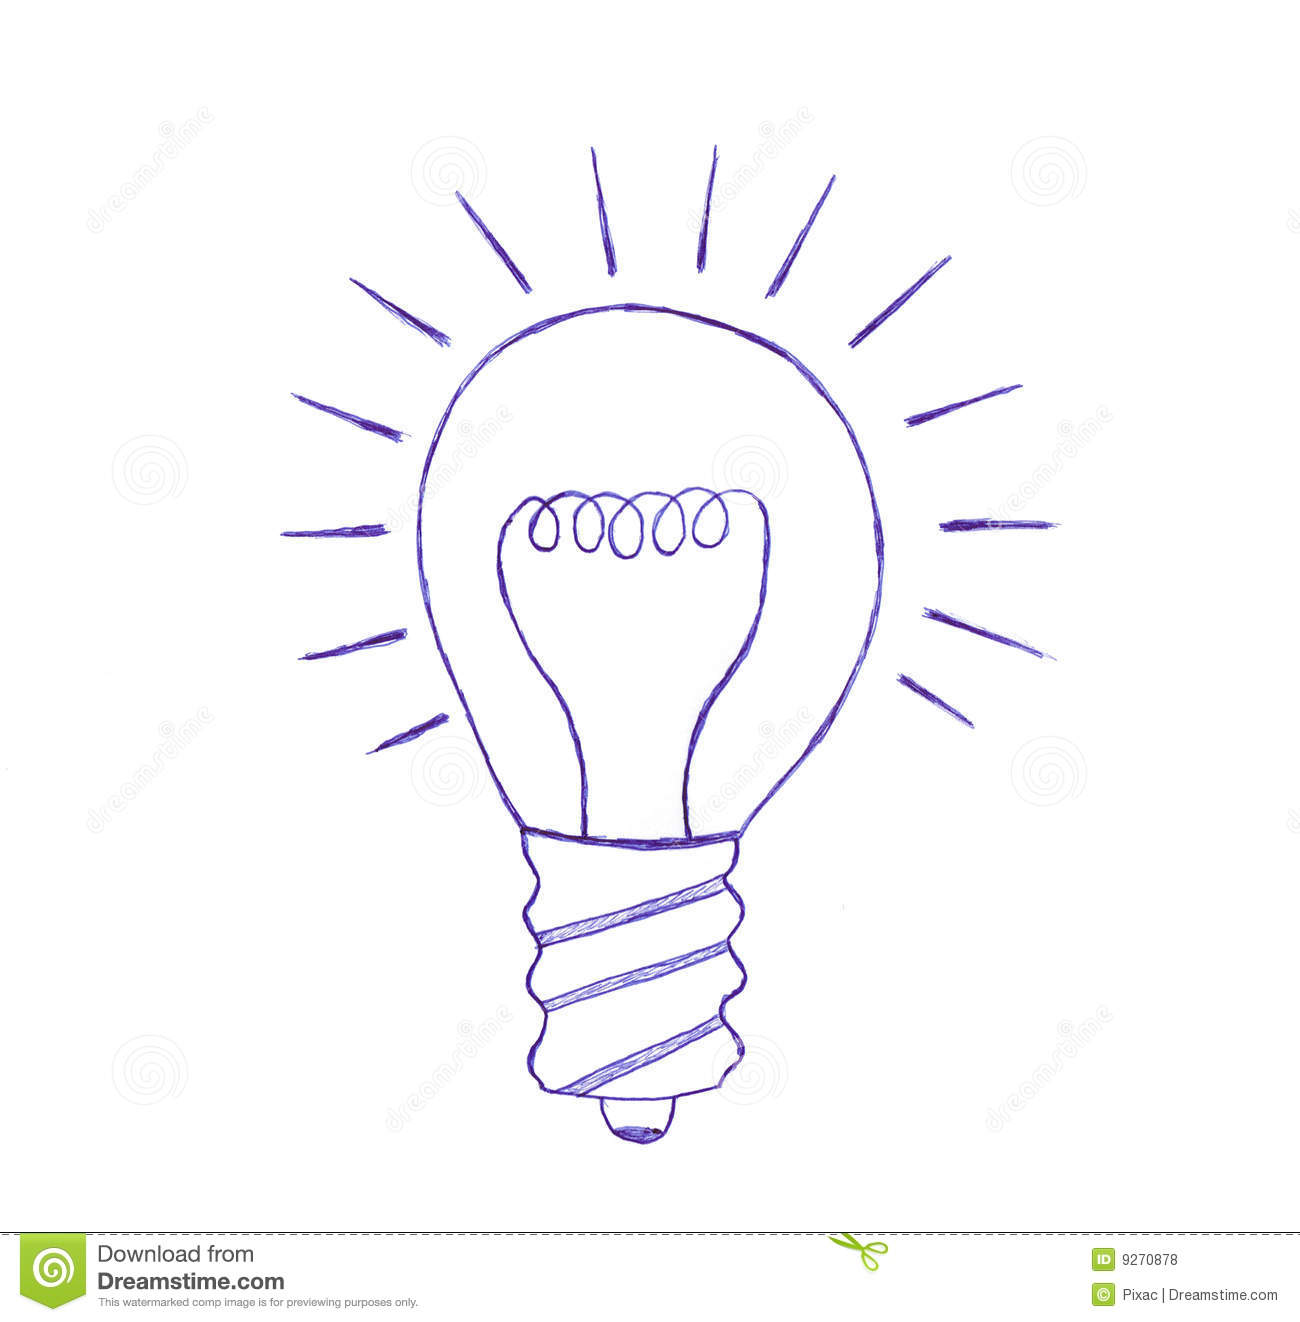 Light Bulb Sketch Royalty Free Stock Photos - Image: 9270878